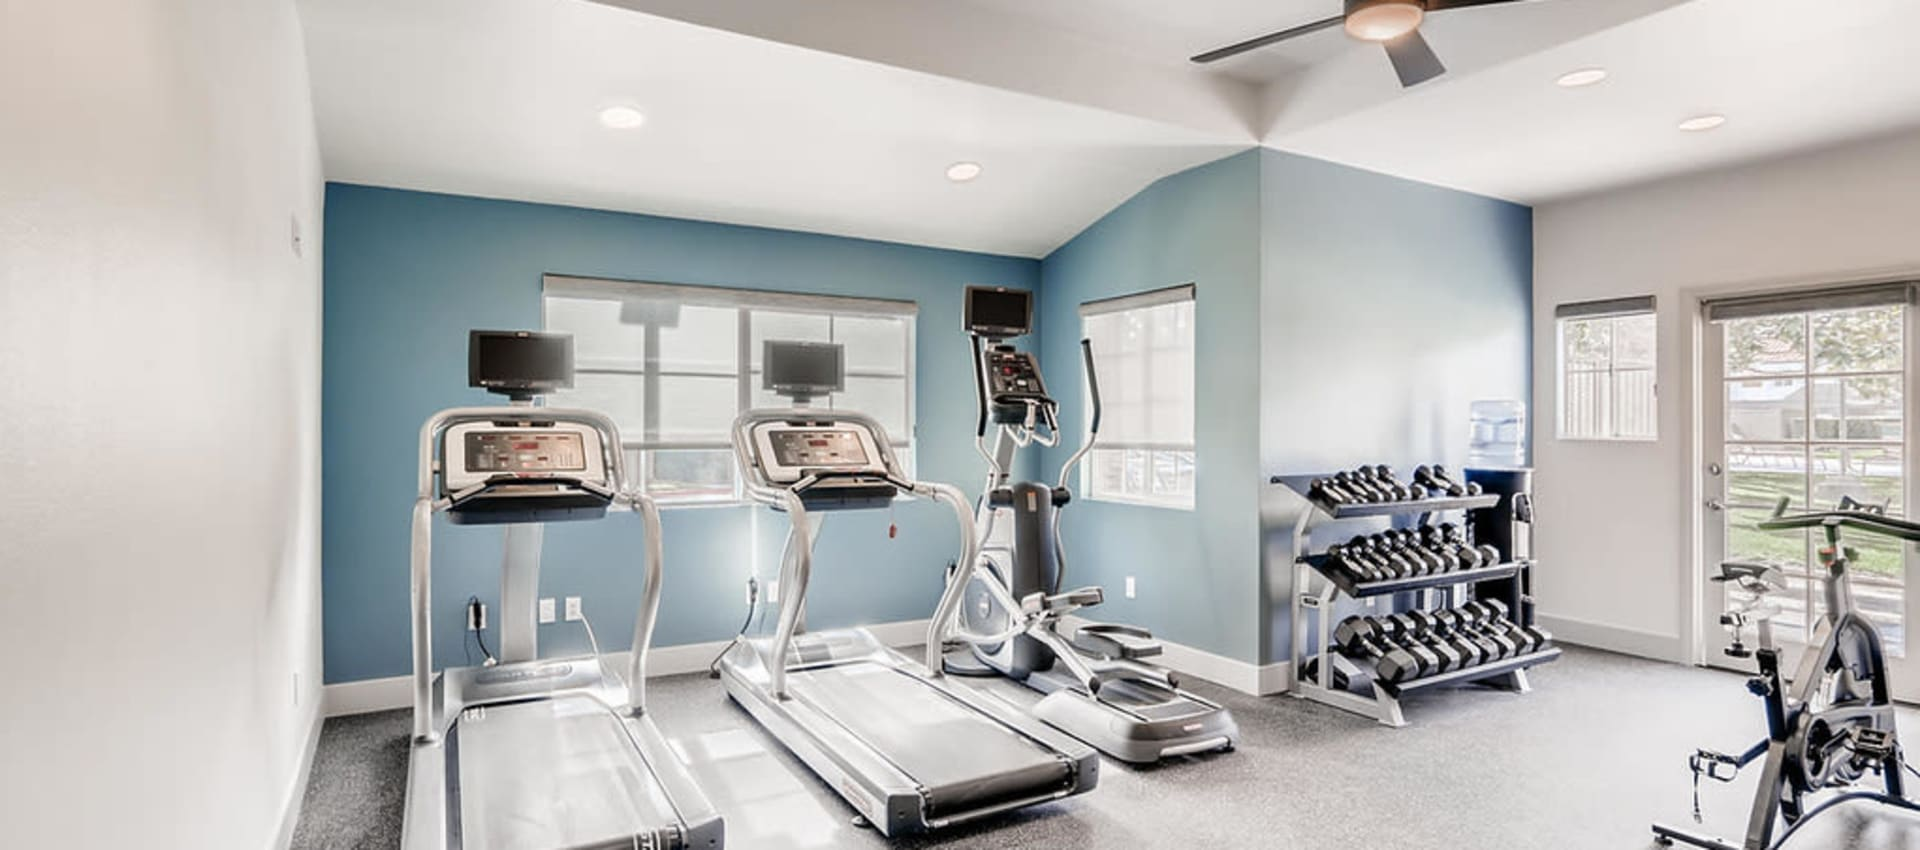 Gym at Hidden Hills Condominium Rentals in Laguna Niguel, California